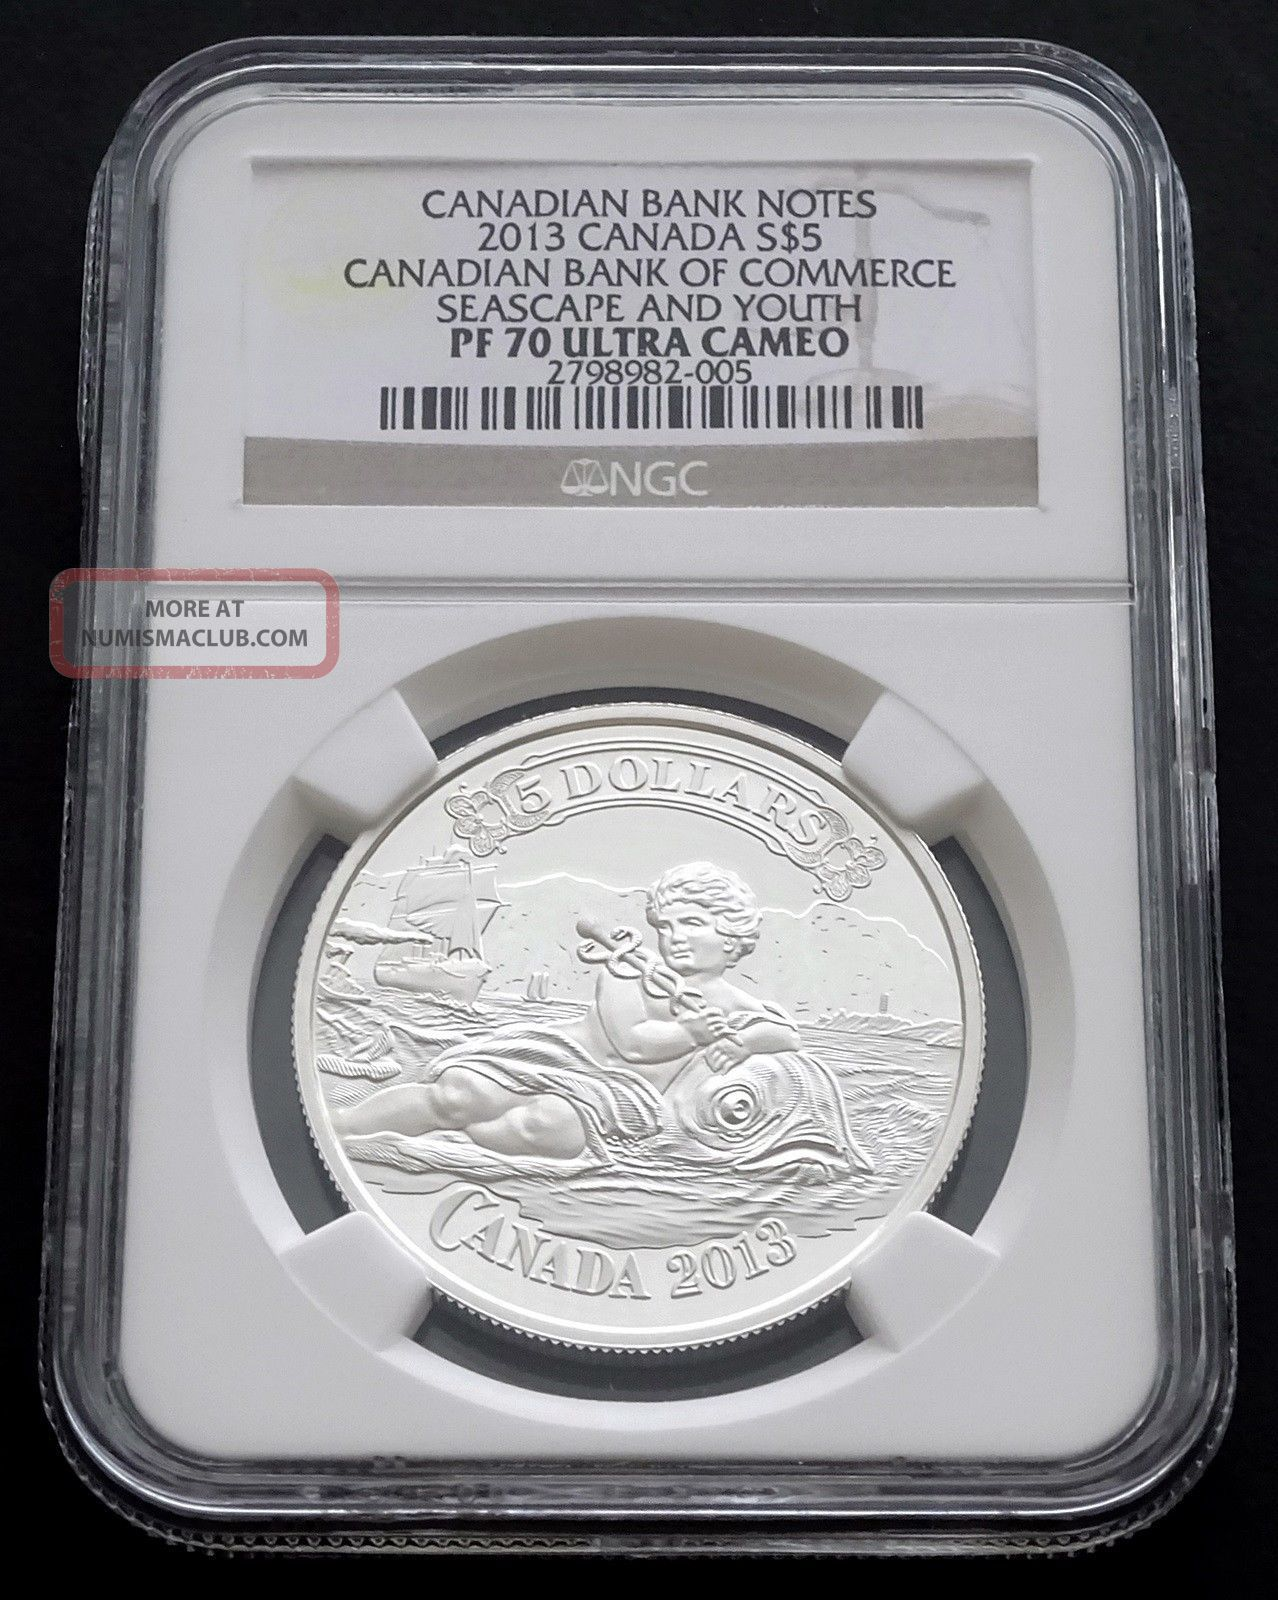 2013 Canada: $5 Canadian Bank Of Commerce,  Seascape And Youth,  Pf70 Ultra Cameo Coins: Canada photo